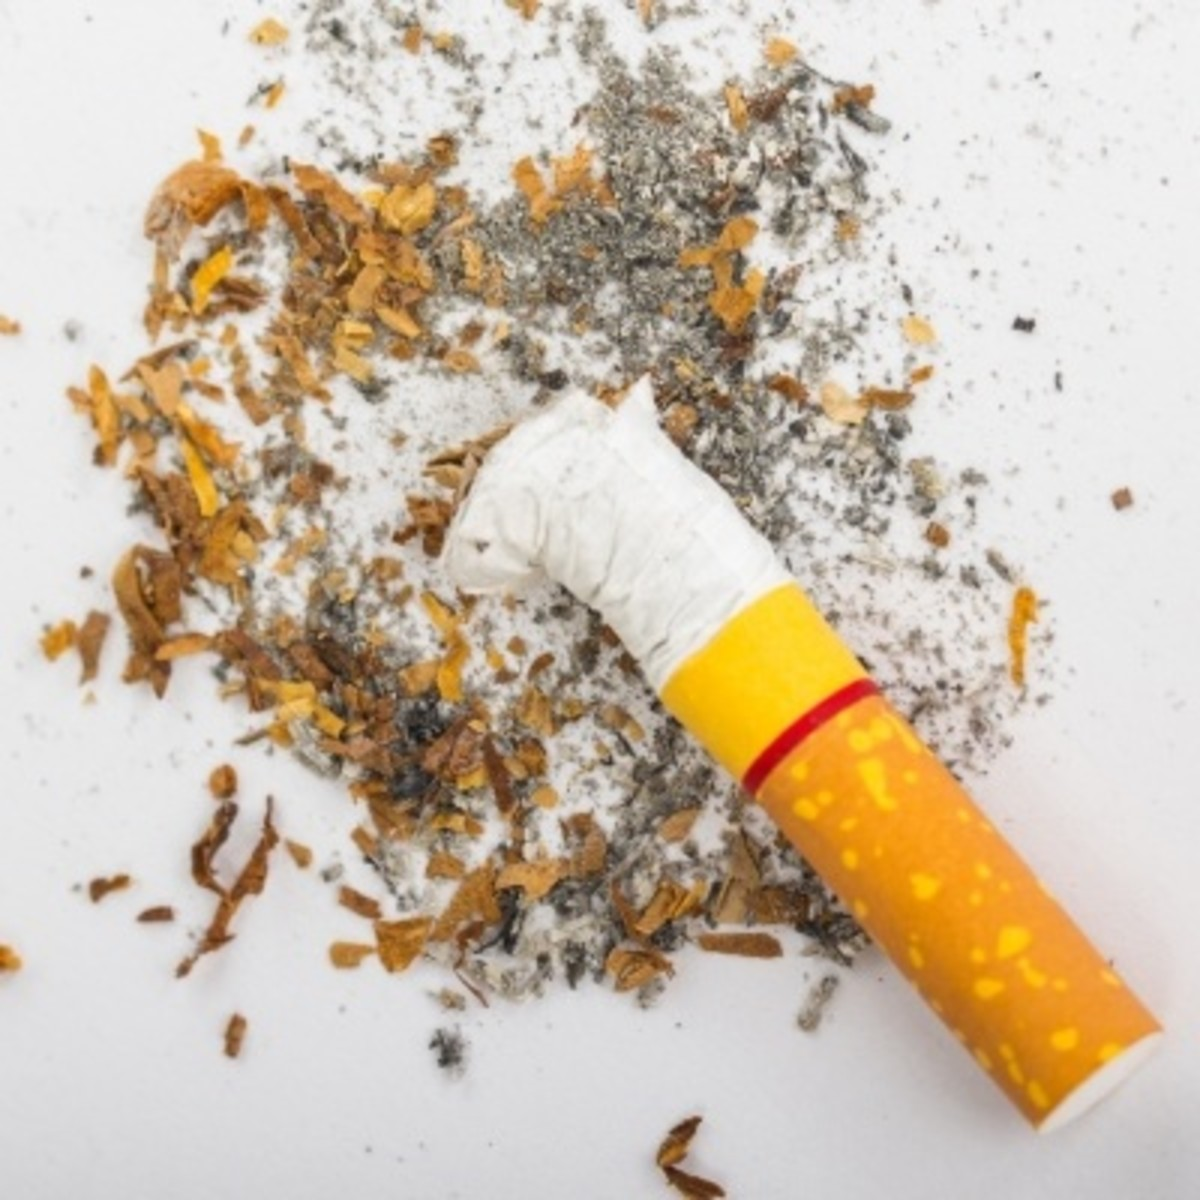 smoking and drugs essay Alcoholism and smoking essay  alcoholism alcohol and drugs have been for many years been abused by many people alcohol is a depressant that slows the function of.